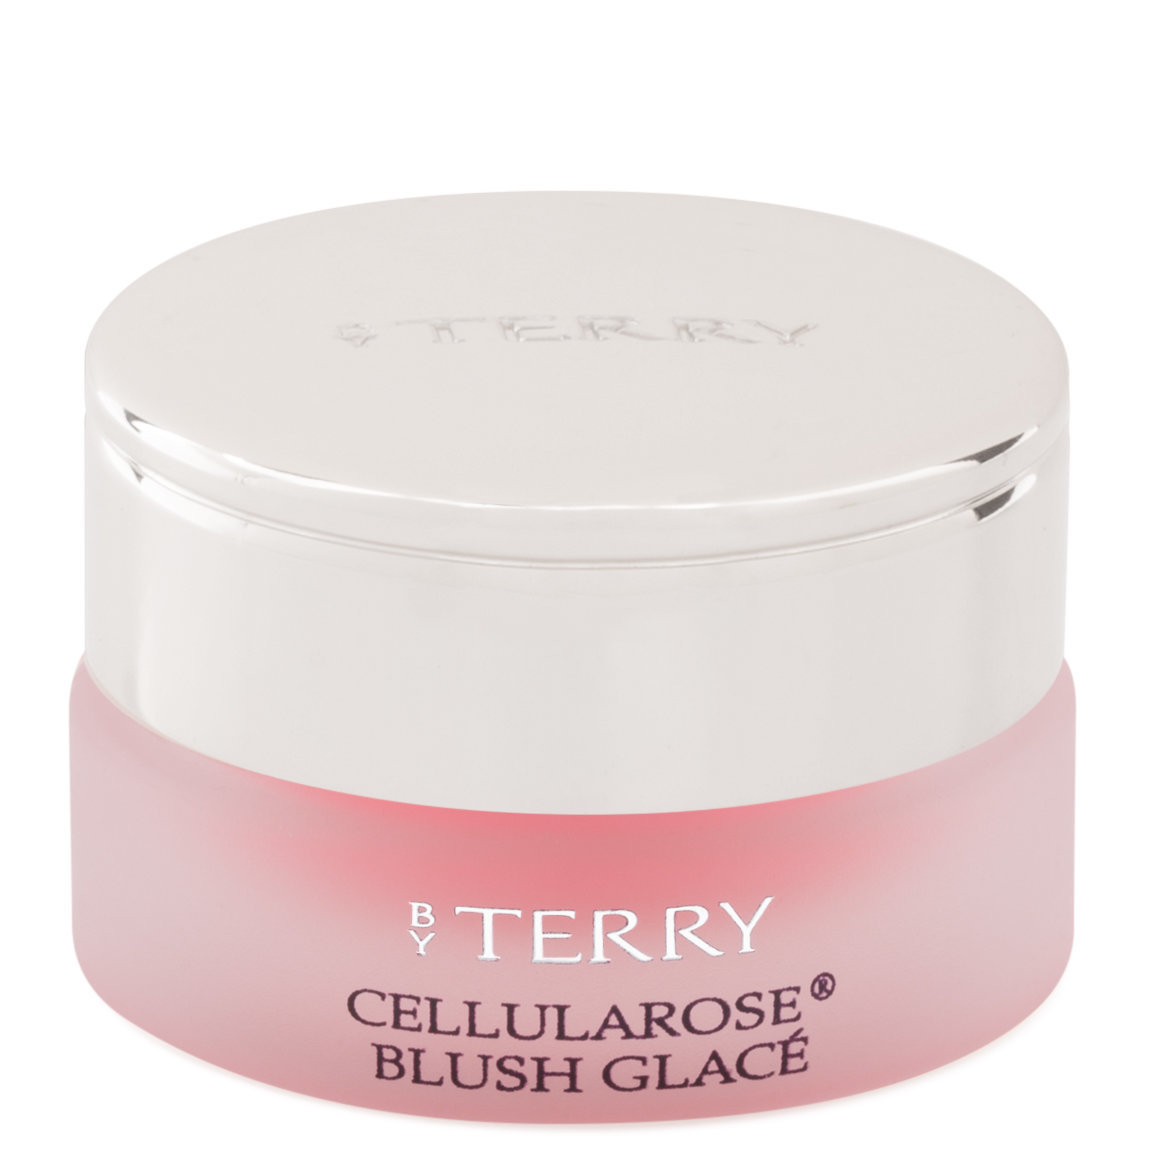 BY TERRY Cellularose Blush Glacé Hydra-Radiance Aqua Blush 1 Rose Melba